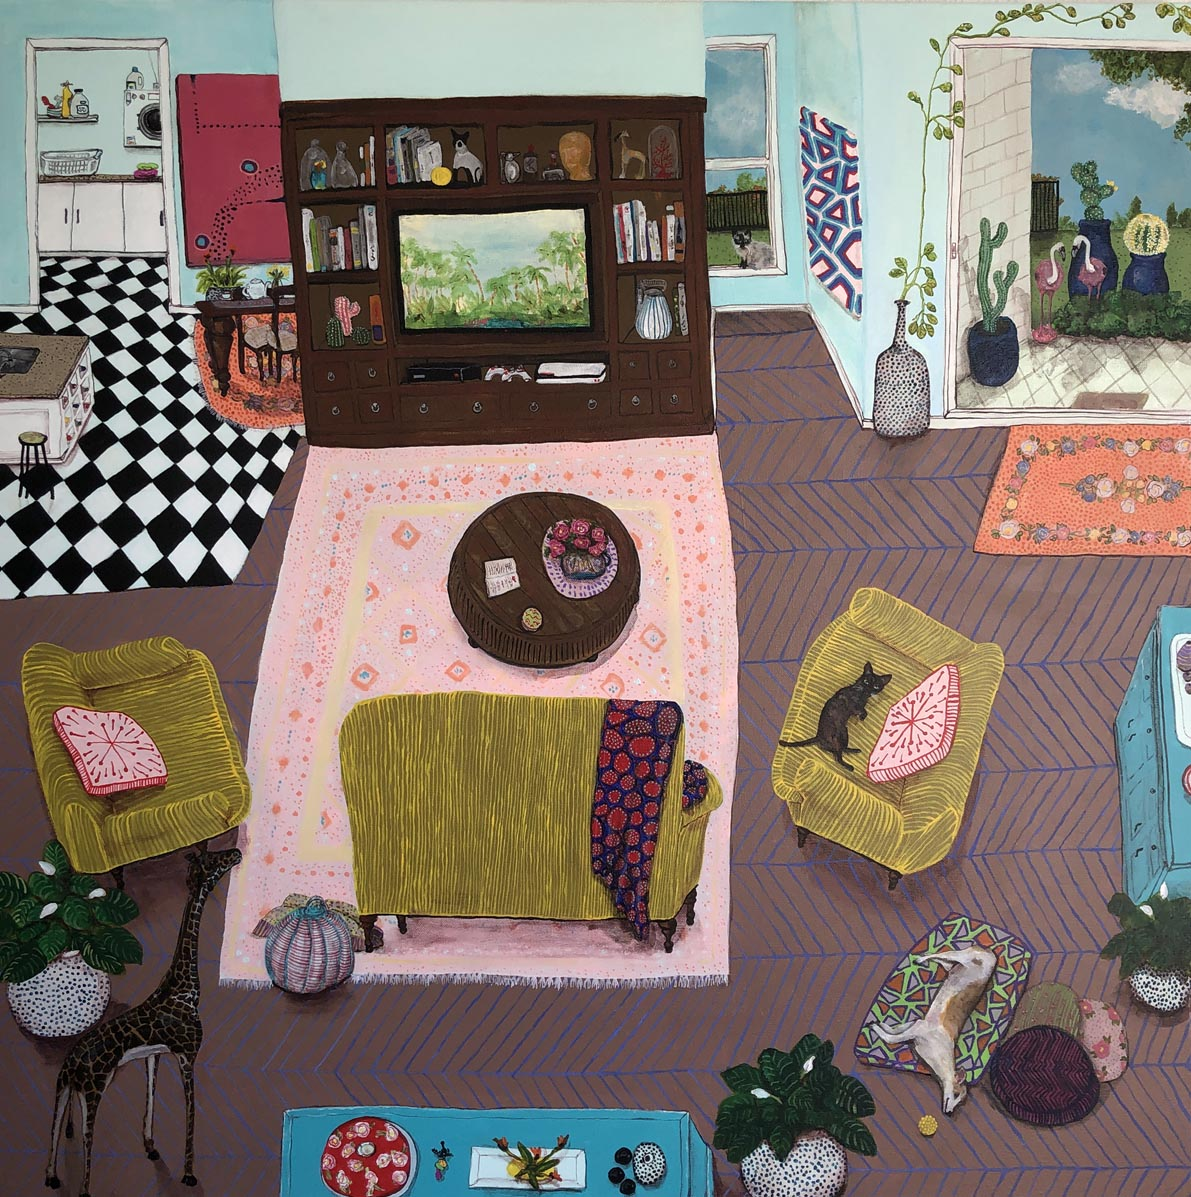 life@home, exhibition 27 Feb.  Anthea Polson Art